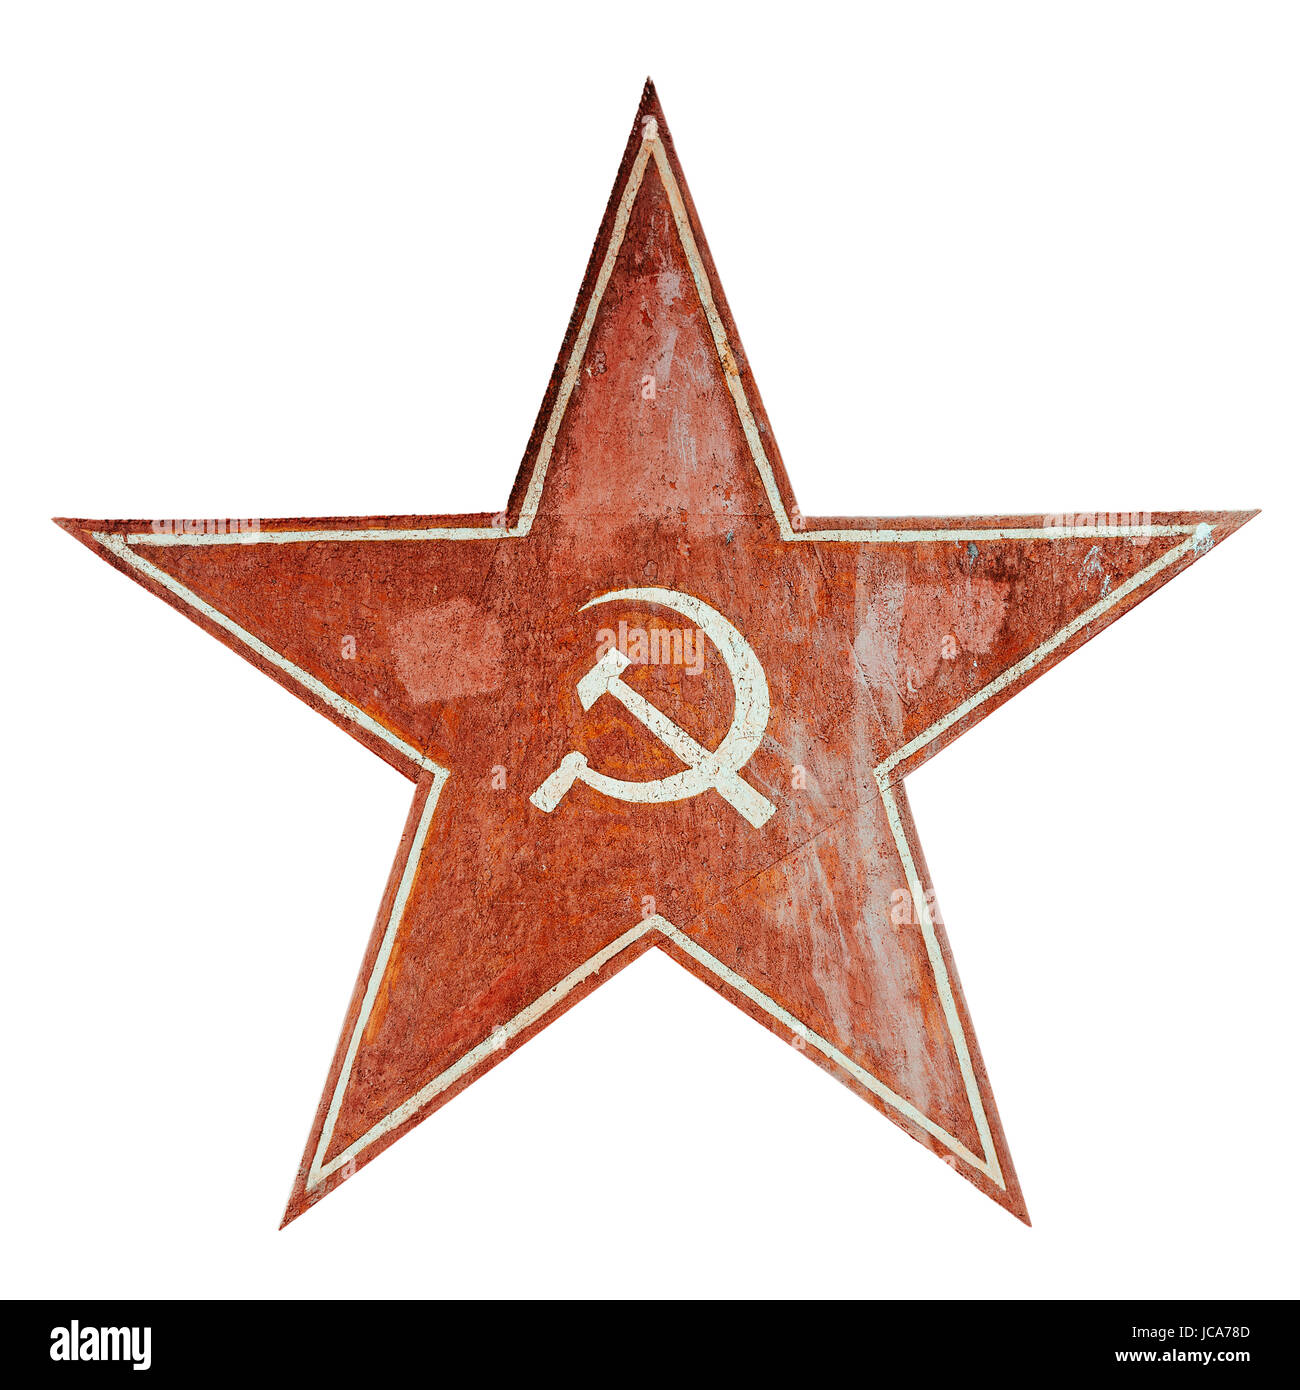 Red ussr communism symbol with hammer and sickle aged metal plate red ussr communism symbol with hammer and sickle aged metal plate isolated on white biocorpaavc